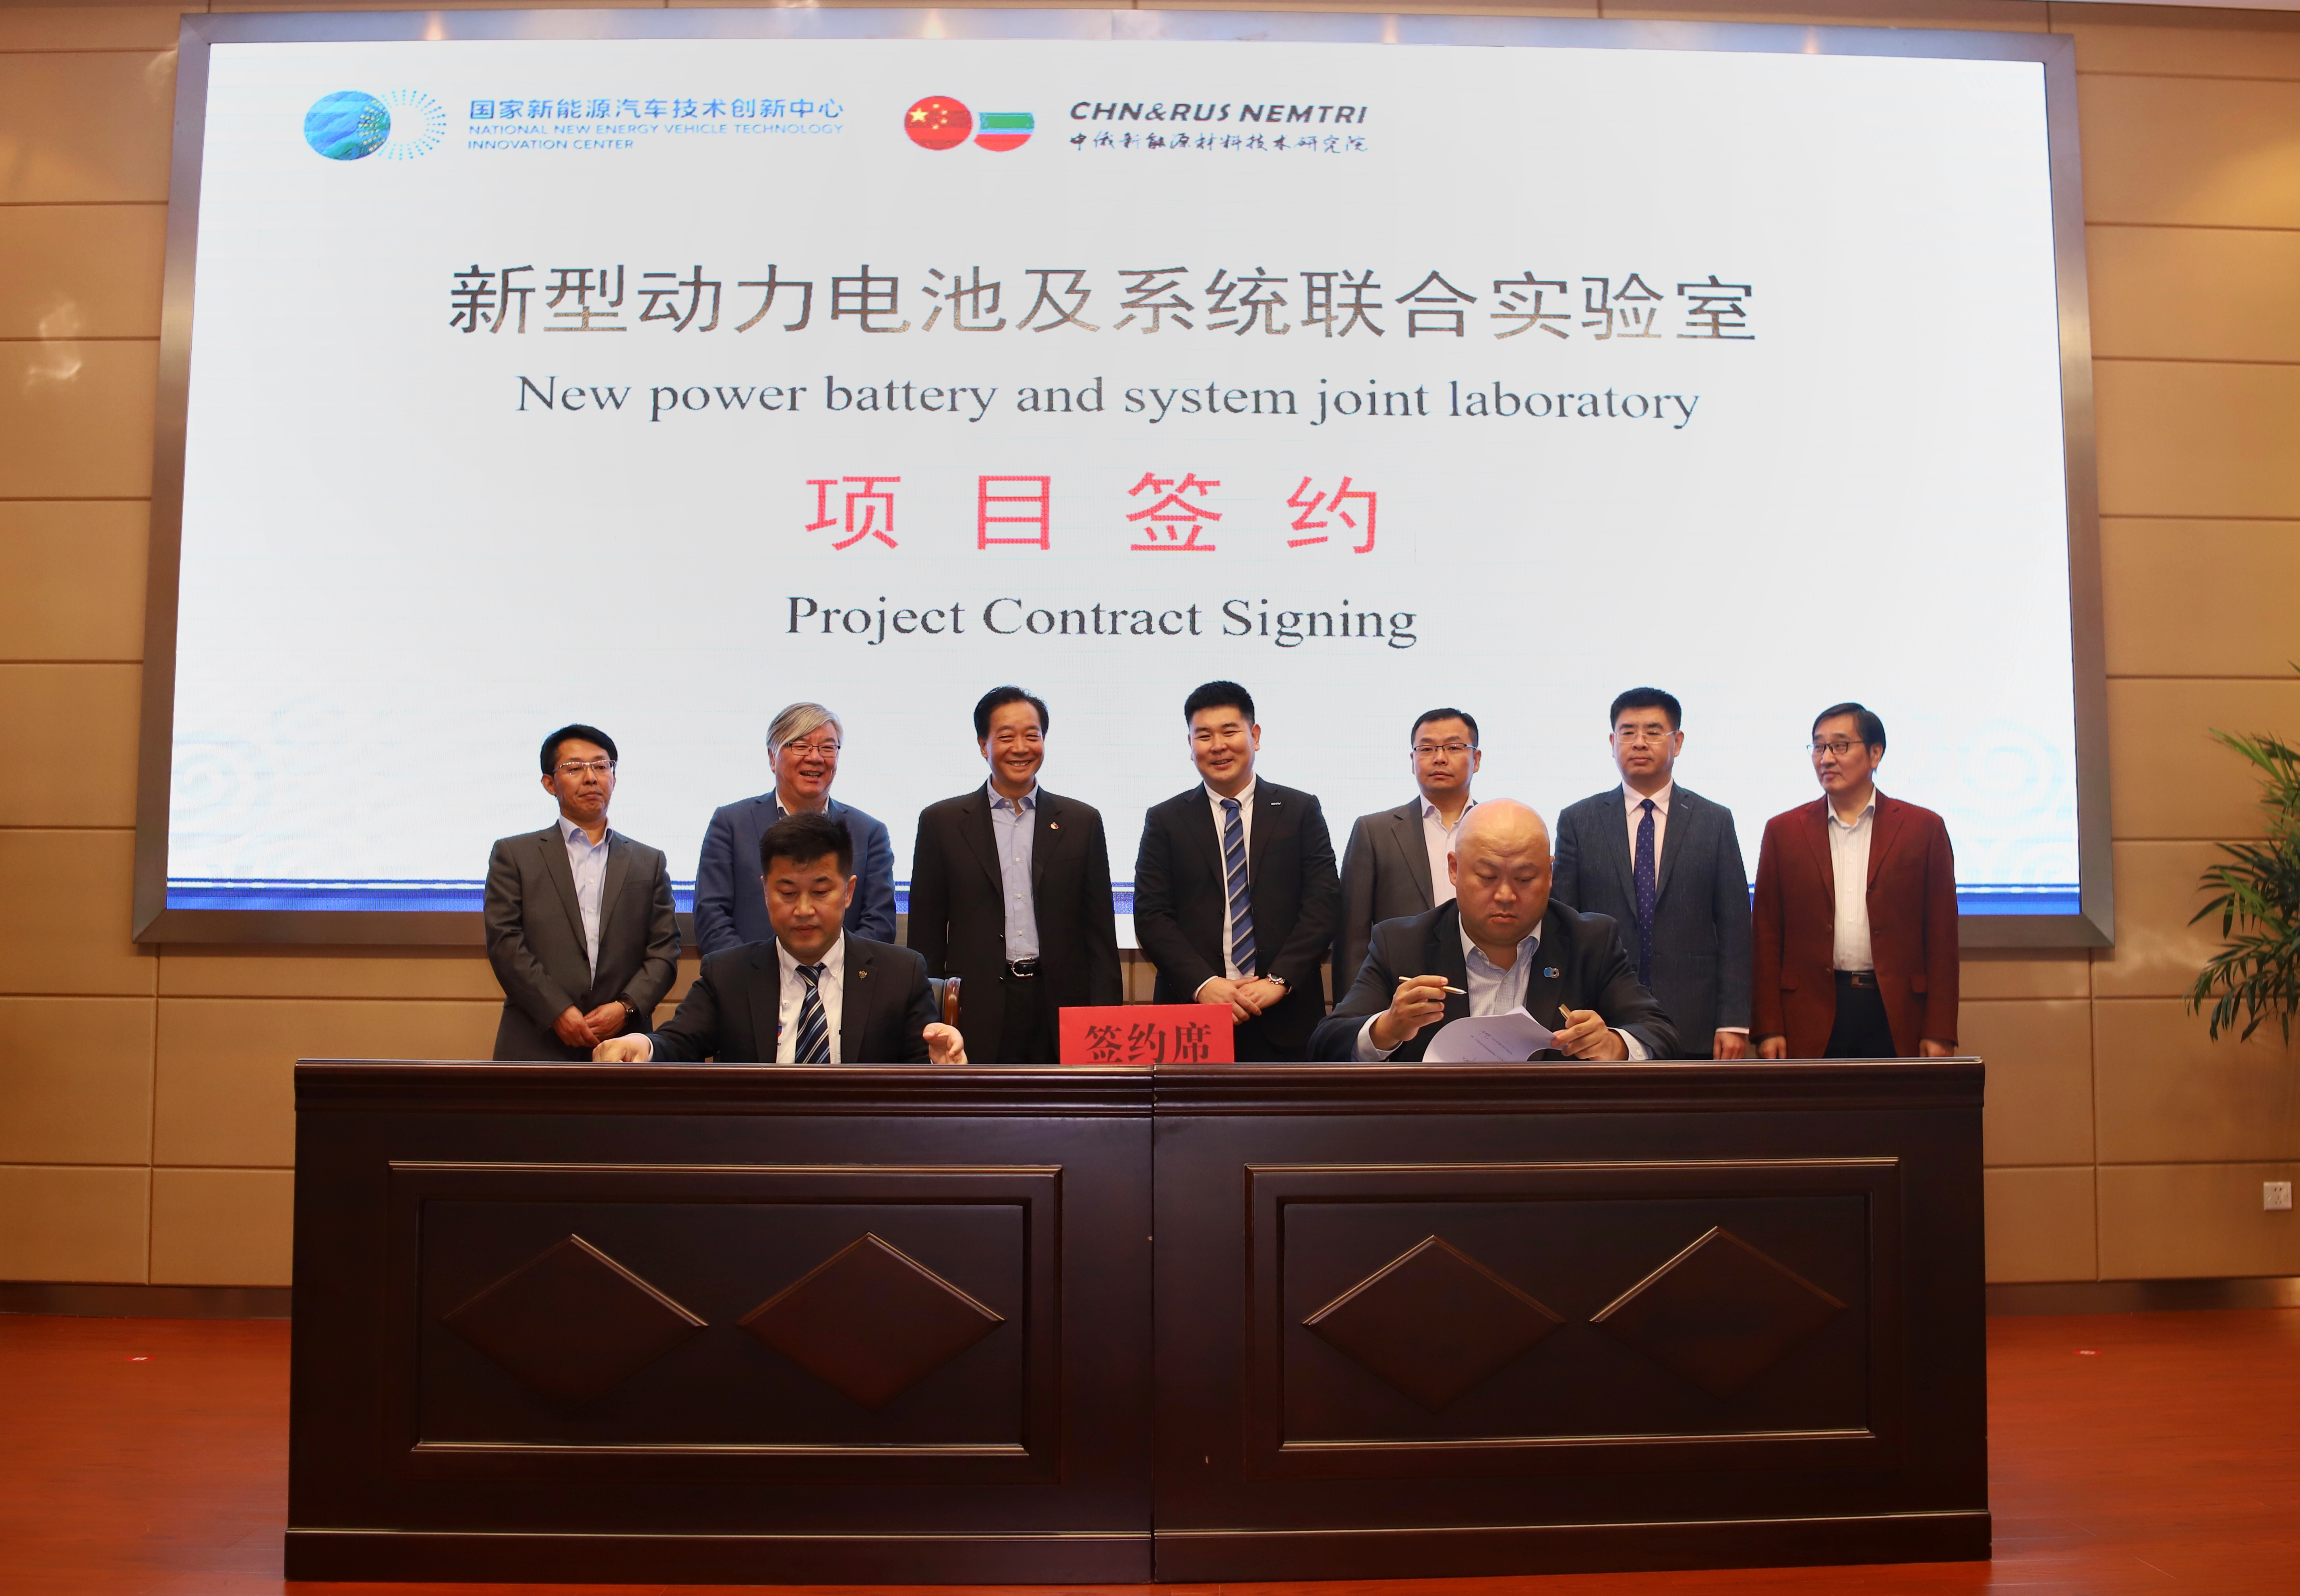 National New Energy Technology Innovation Center and China-Russia New Energy Materials Technology Research Institute signed a strategic cooperation agreement